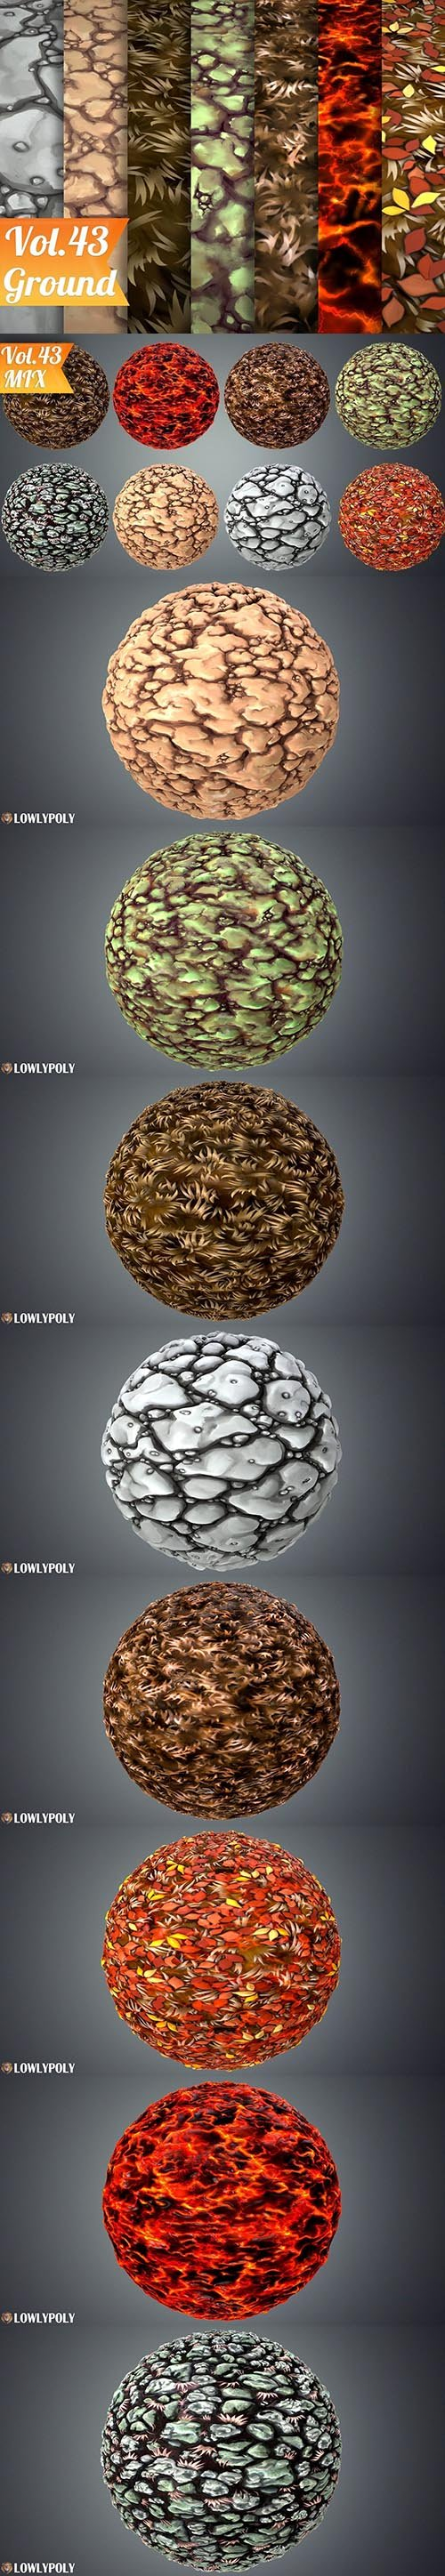 Stylized Ground Vol 43 - Hand Painted Texture Pack Texture